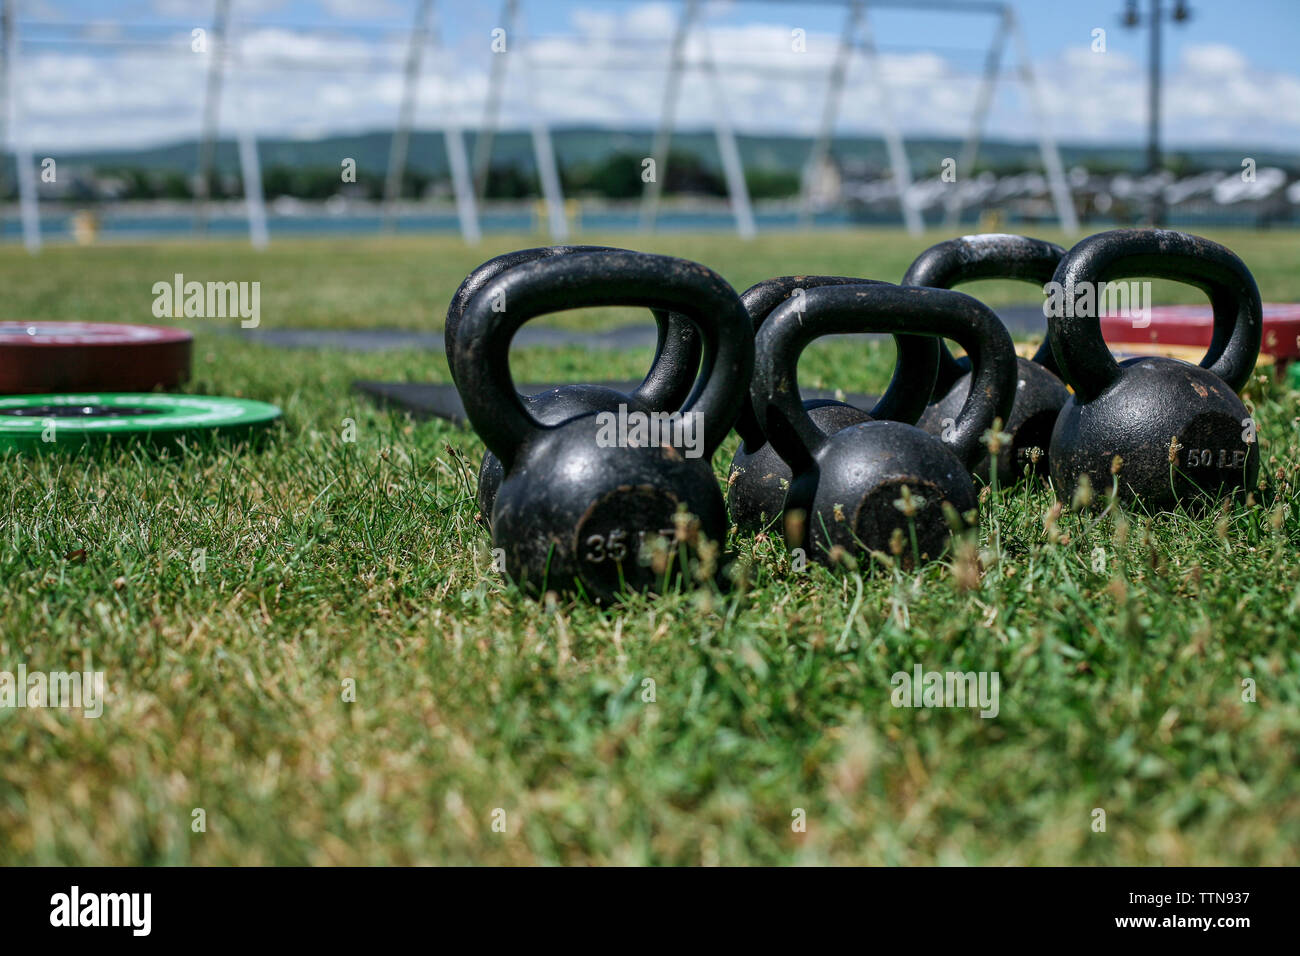 Close-up of kettlebells on grassy field at park during sunny day - Stock Image